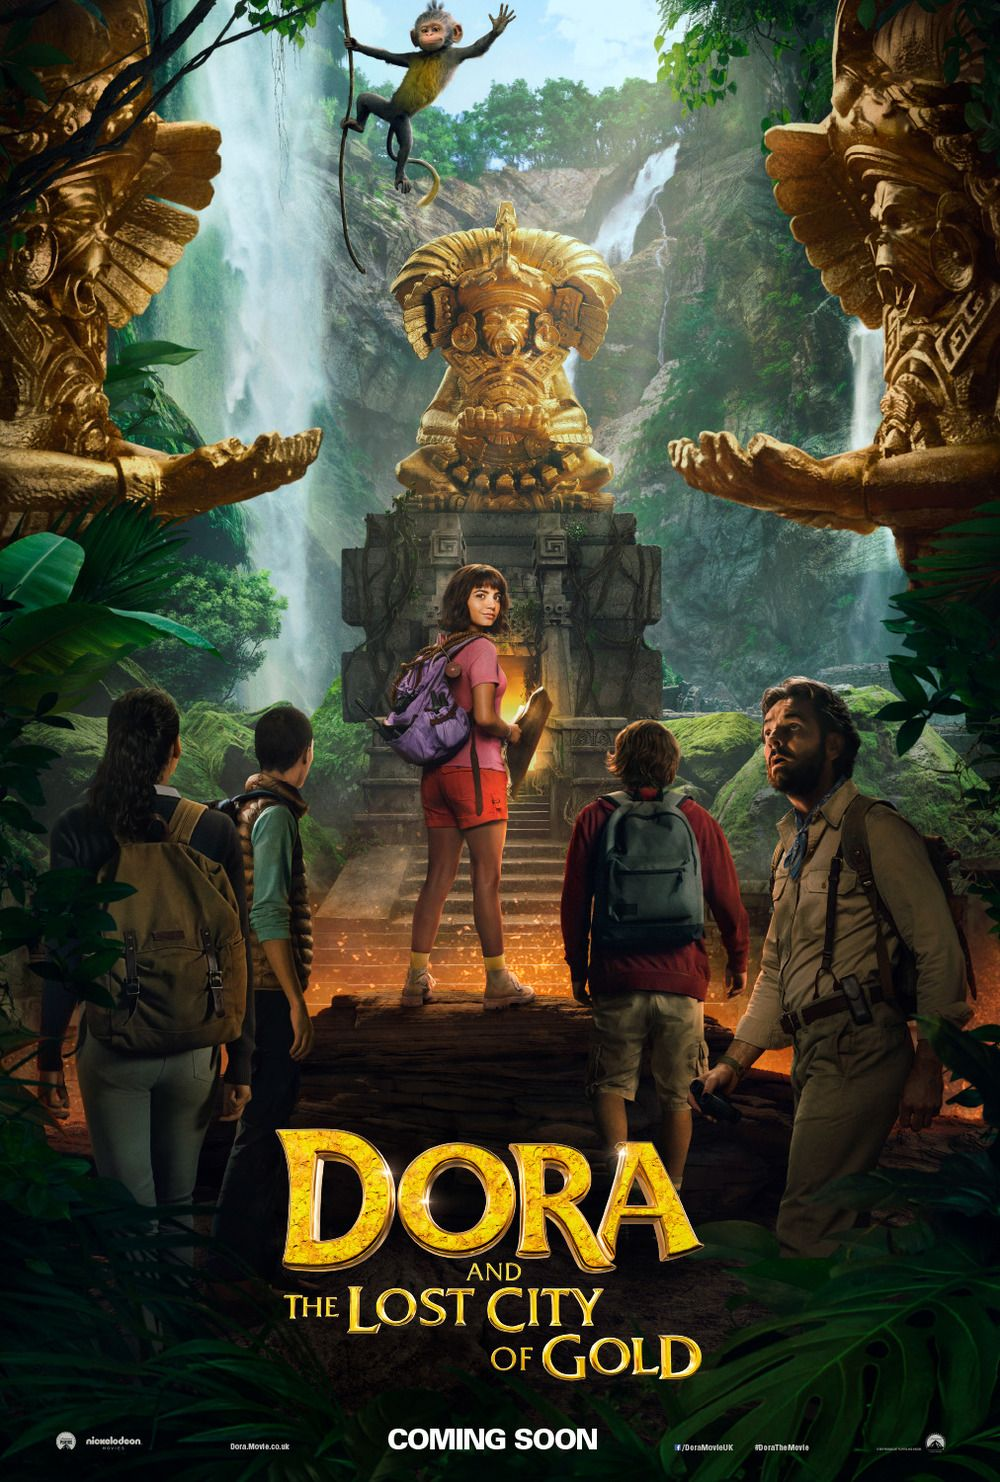 Dora And The Lost City Of Gold Lost City Of Gold Lost City Action Anime Movies